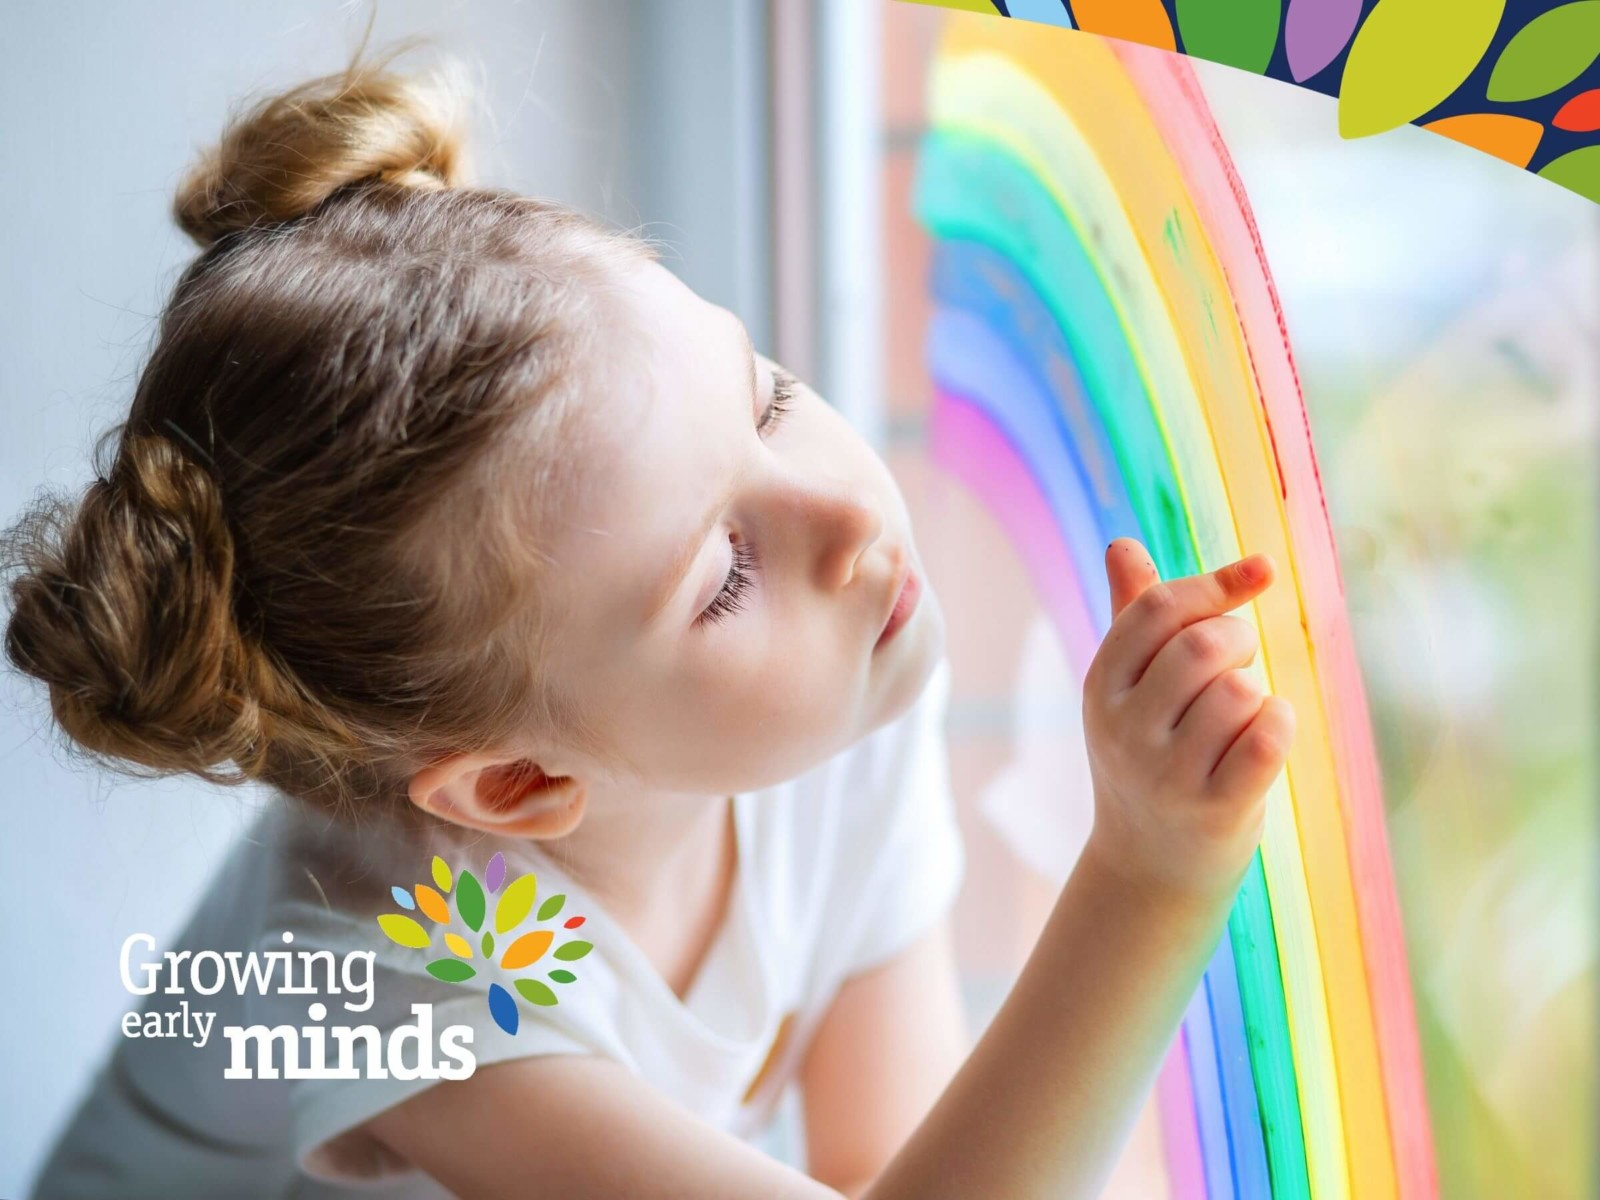 A Child With Learning Behavioural Difficulties Looking At A Rainbow Painted On The Window